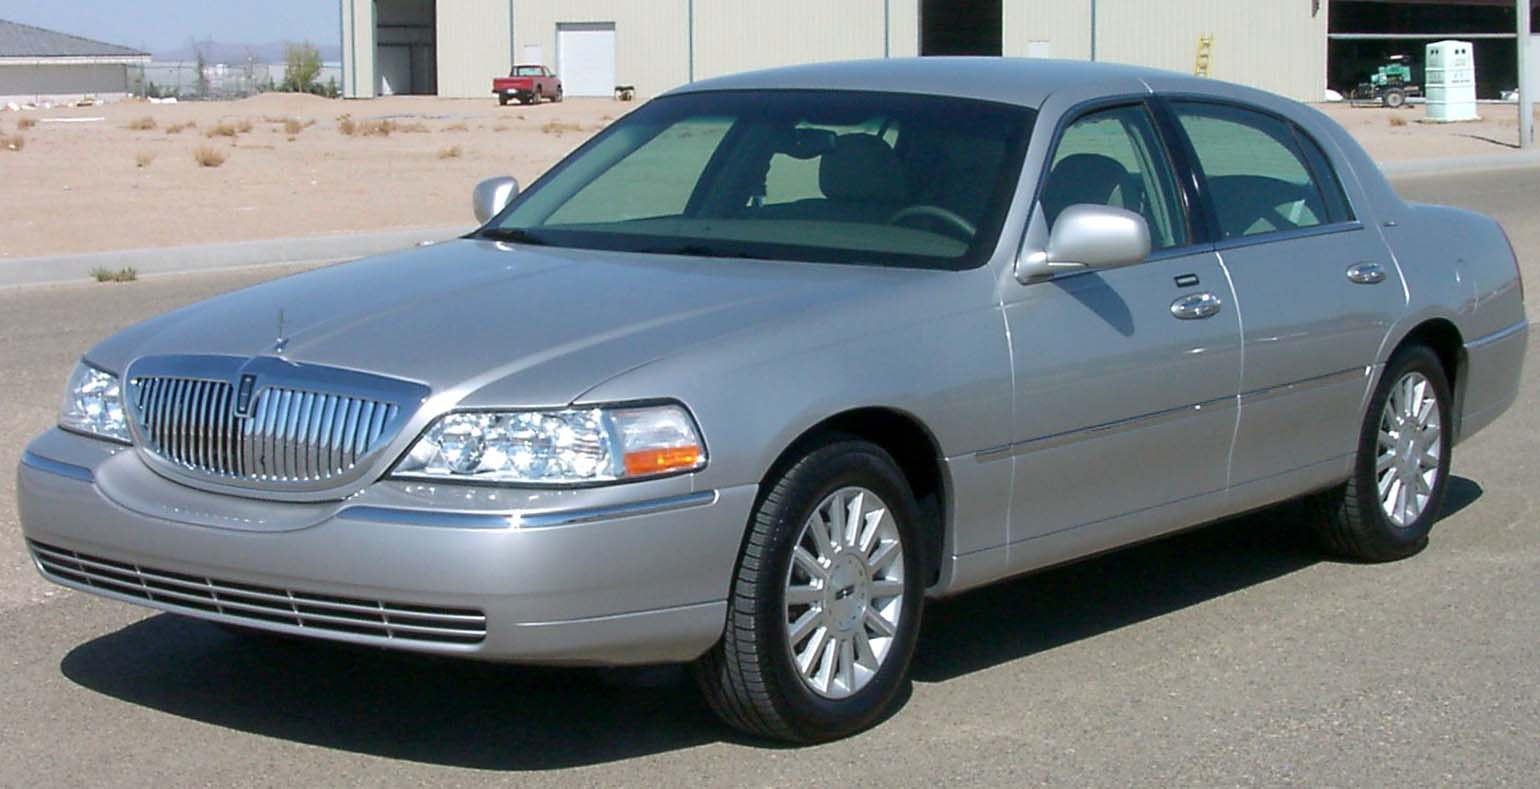 https://upload.wikimedia.org/wikipedia/commons/a/a6/2003_Lincoln_Town_Car_--_NHTSA.jpg